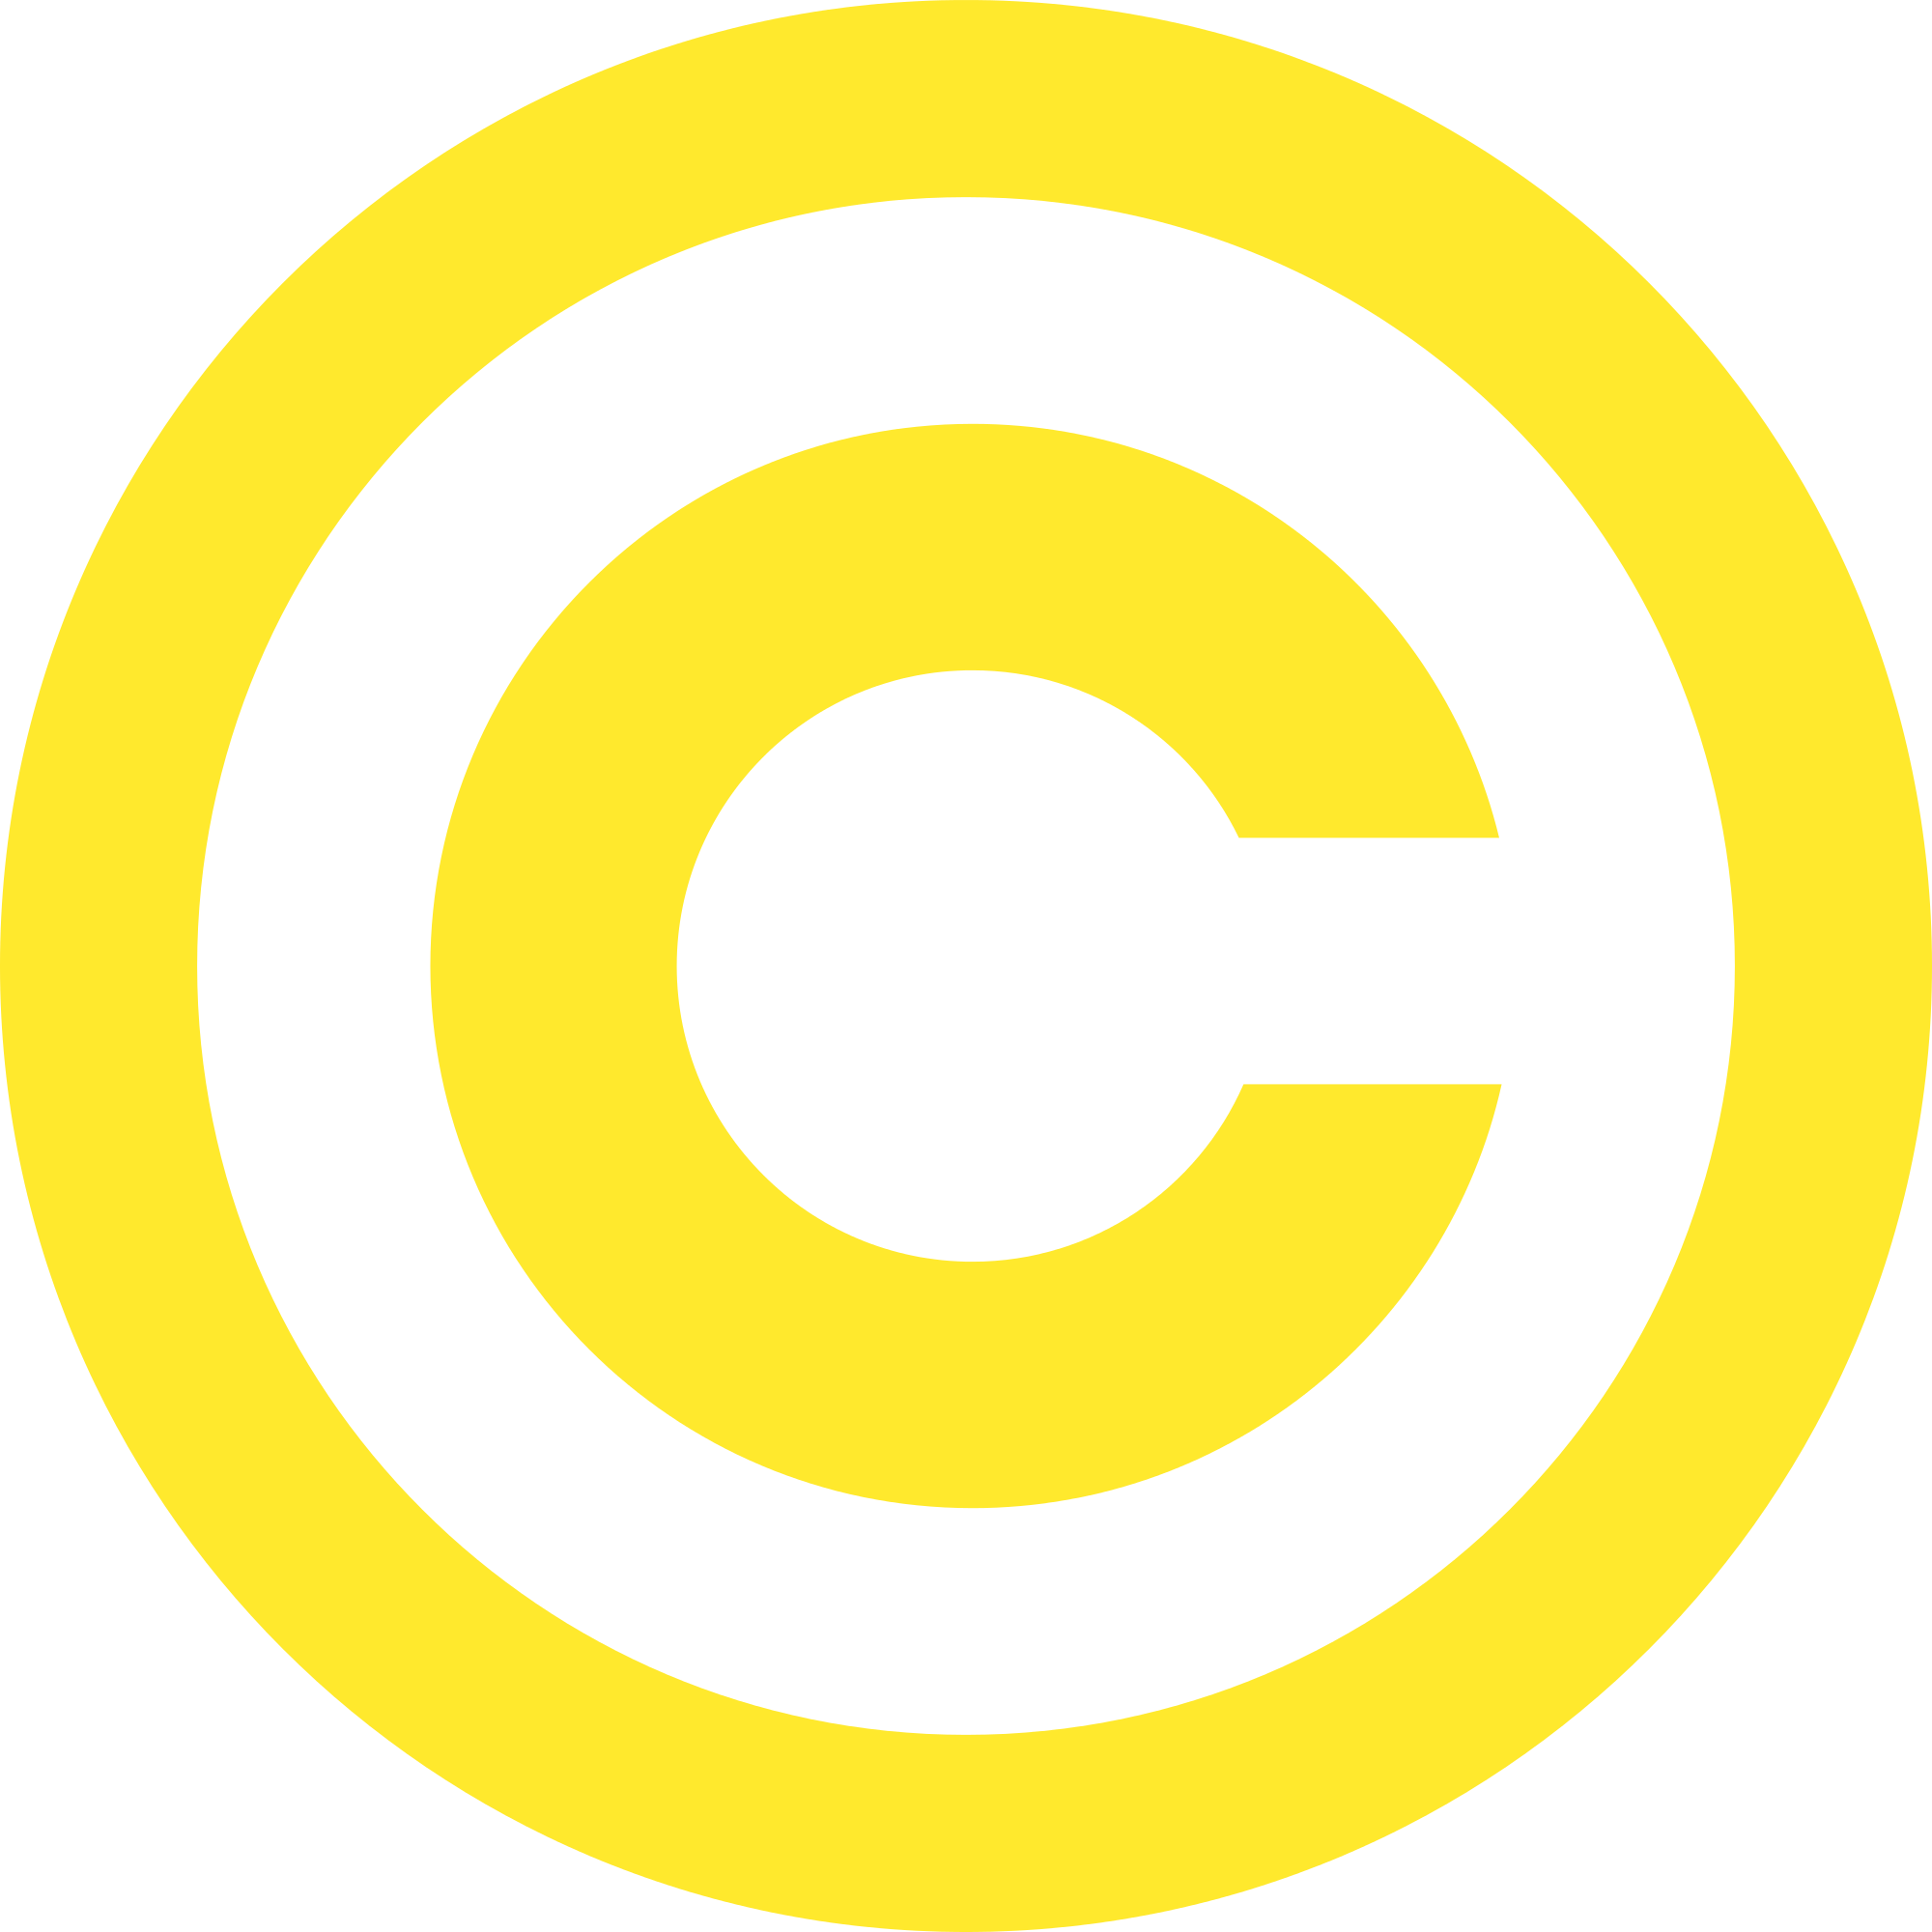 Copyright c png. Images free download